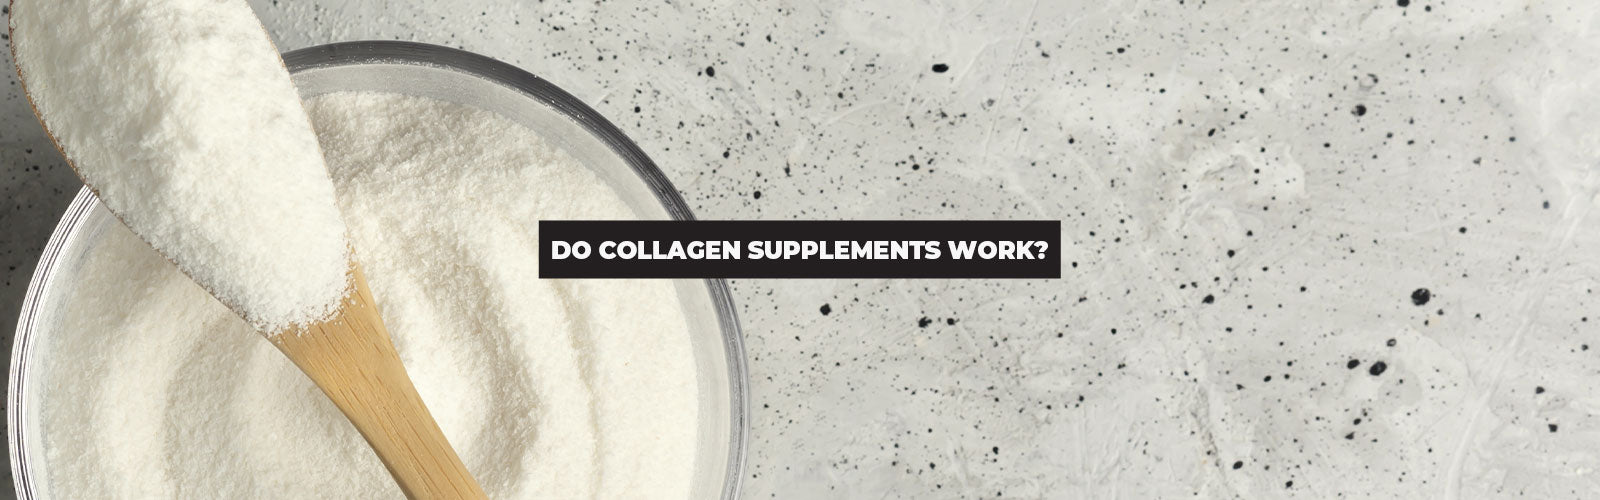 Do Collagen Supplements Work? The Efficacy of Dietary Collagen Products